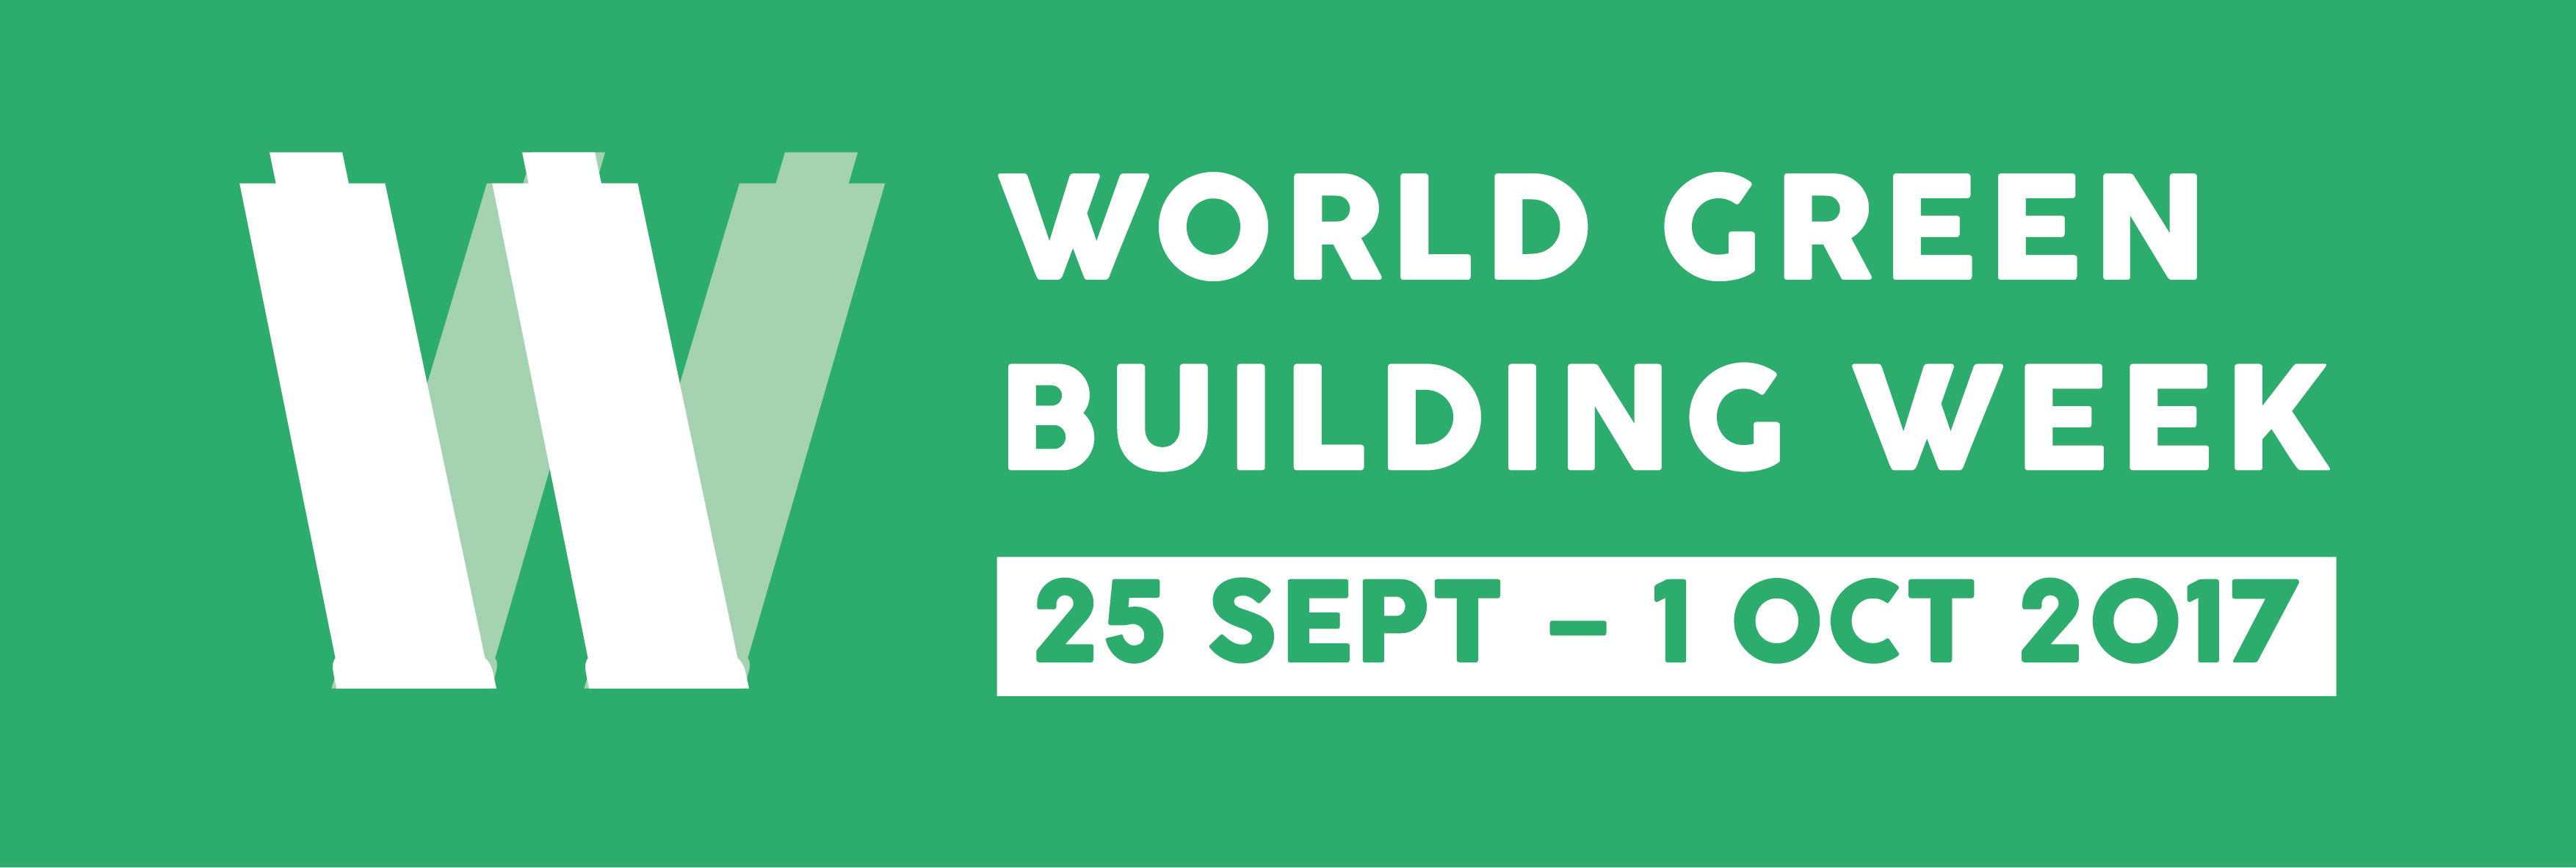 Global Activity Map World Green Building Council